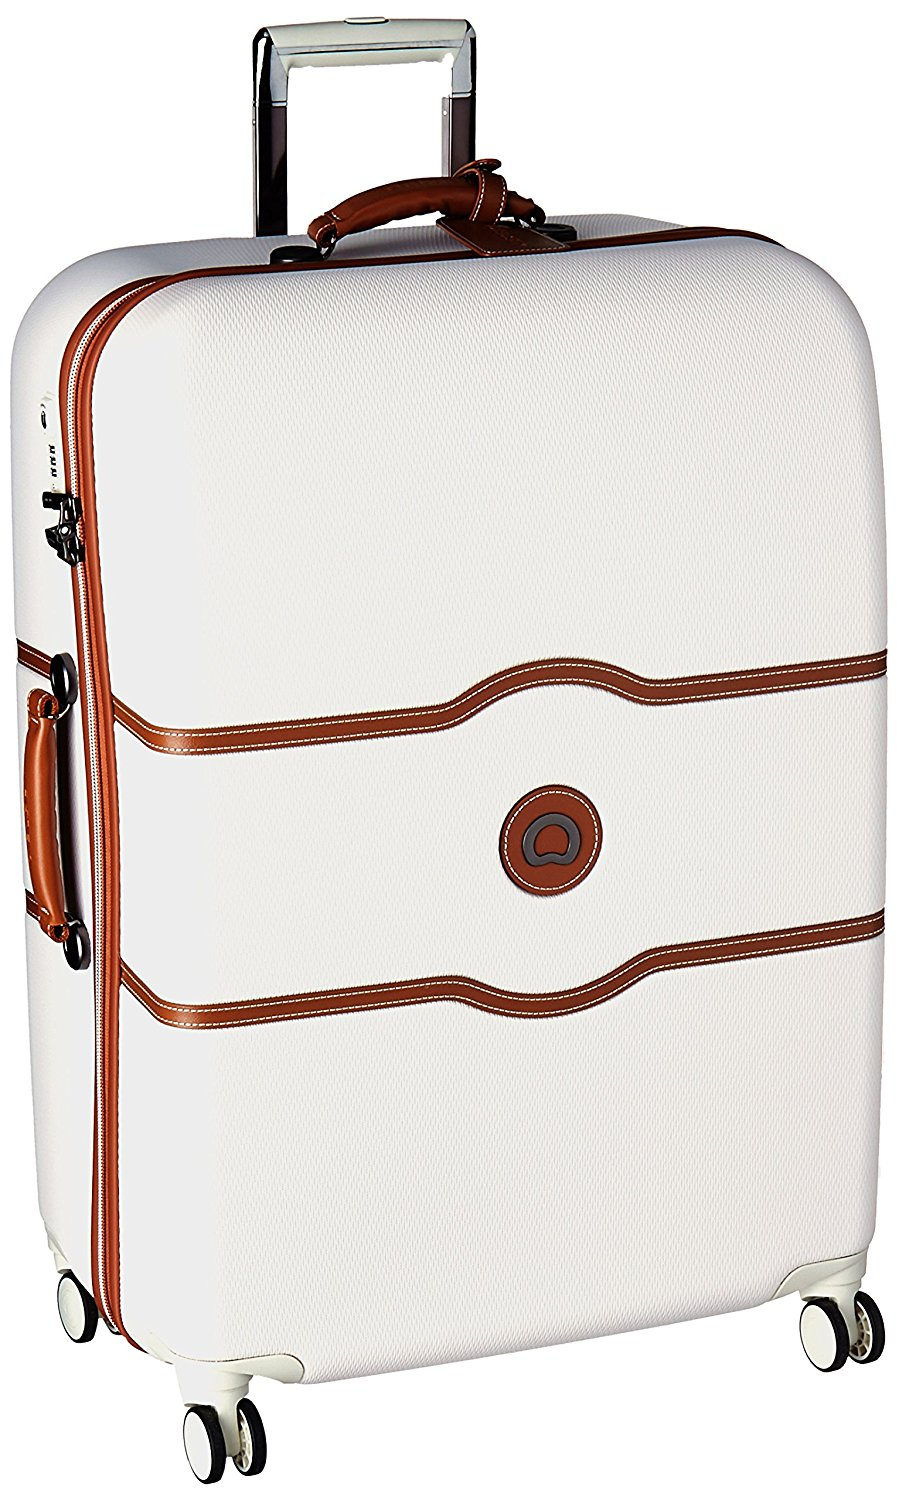 Delsey Luggage Chatelet Hard+ - 12.5 x 27.5 x 20 inches